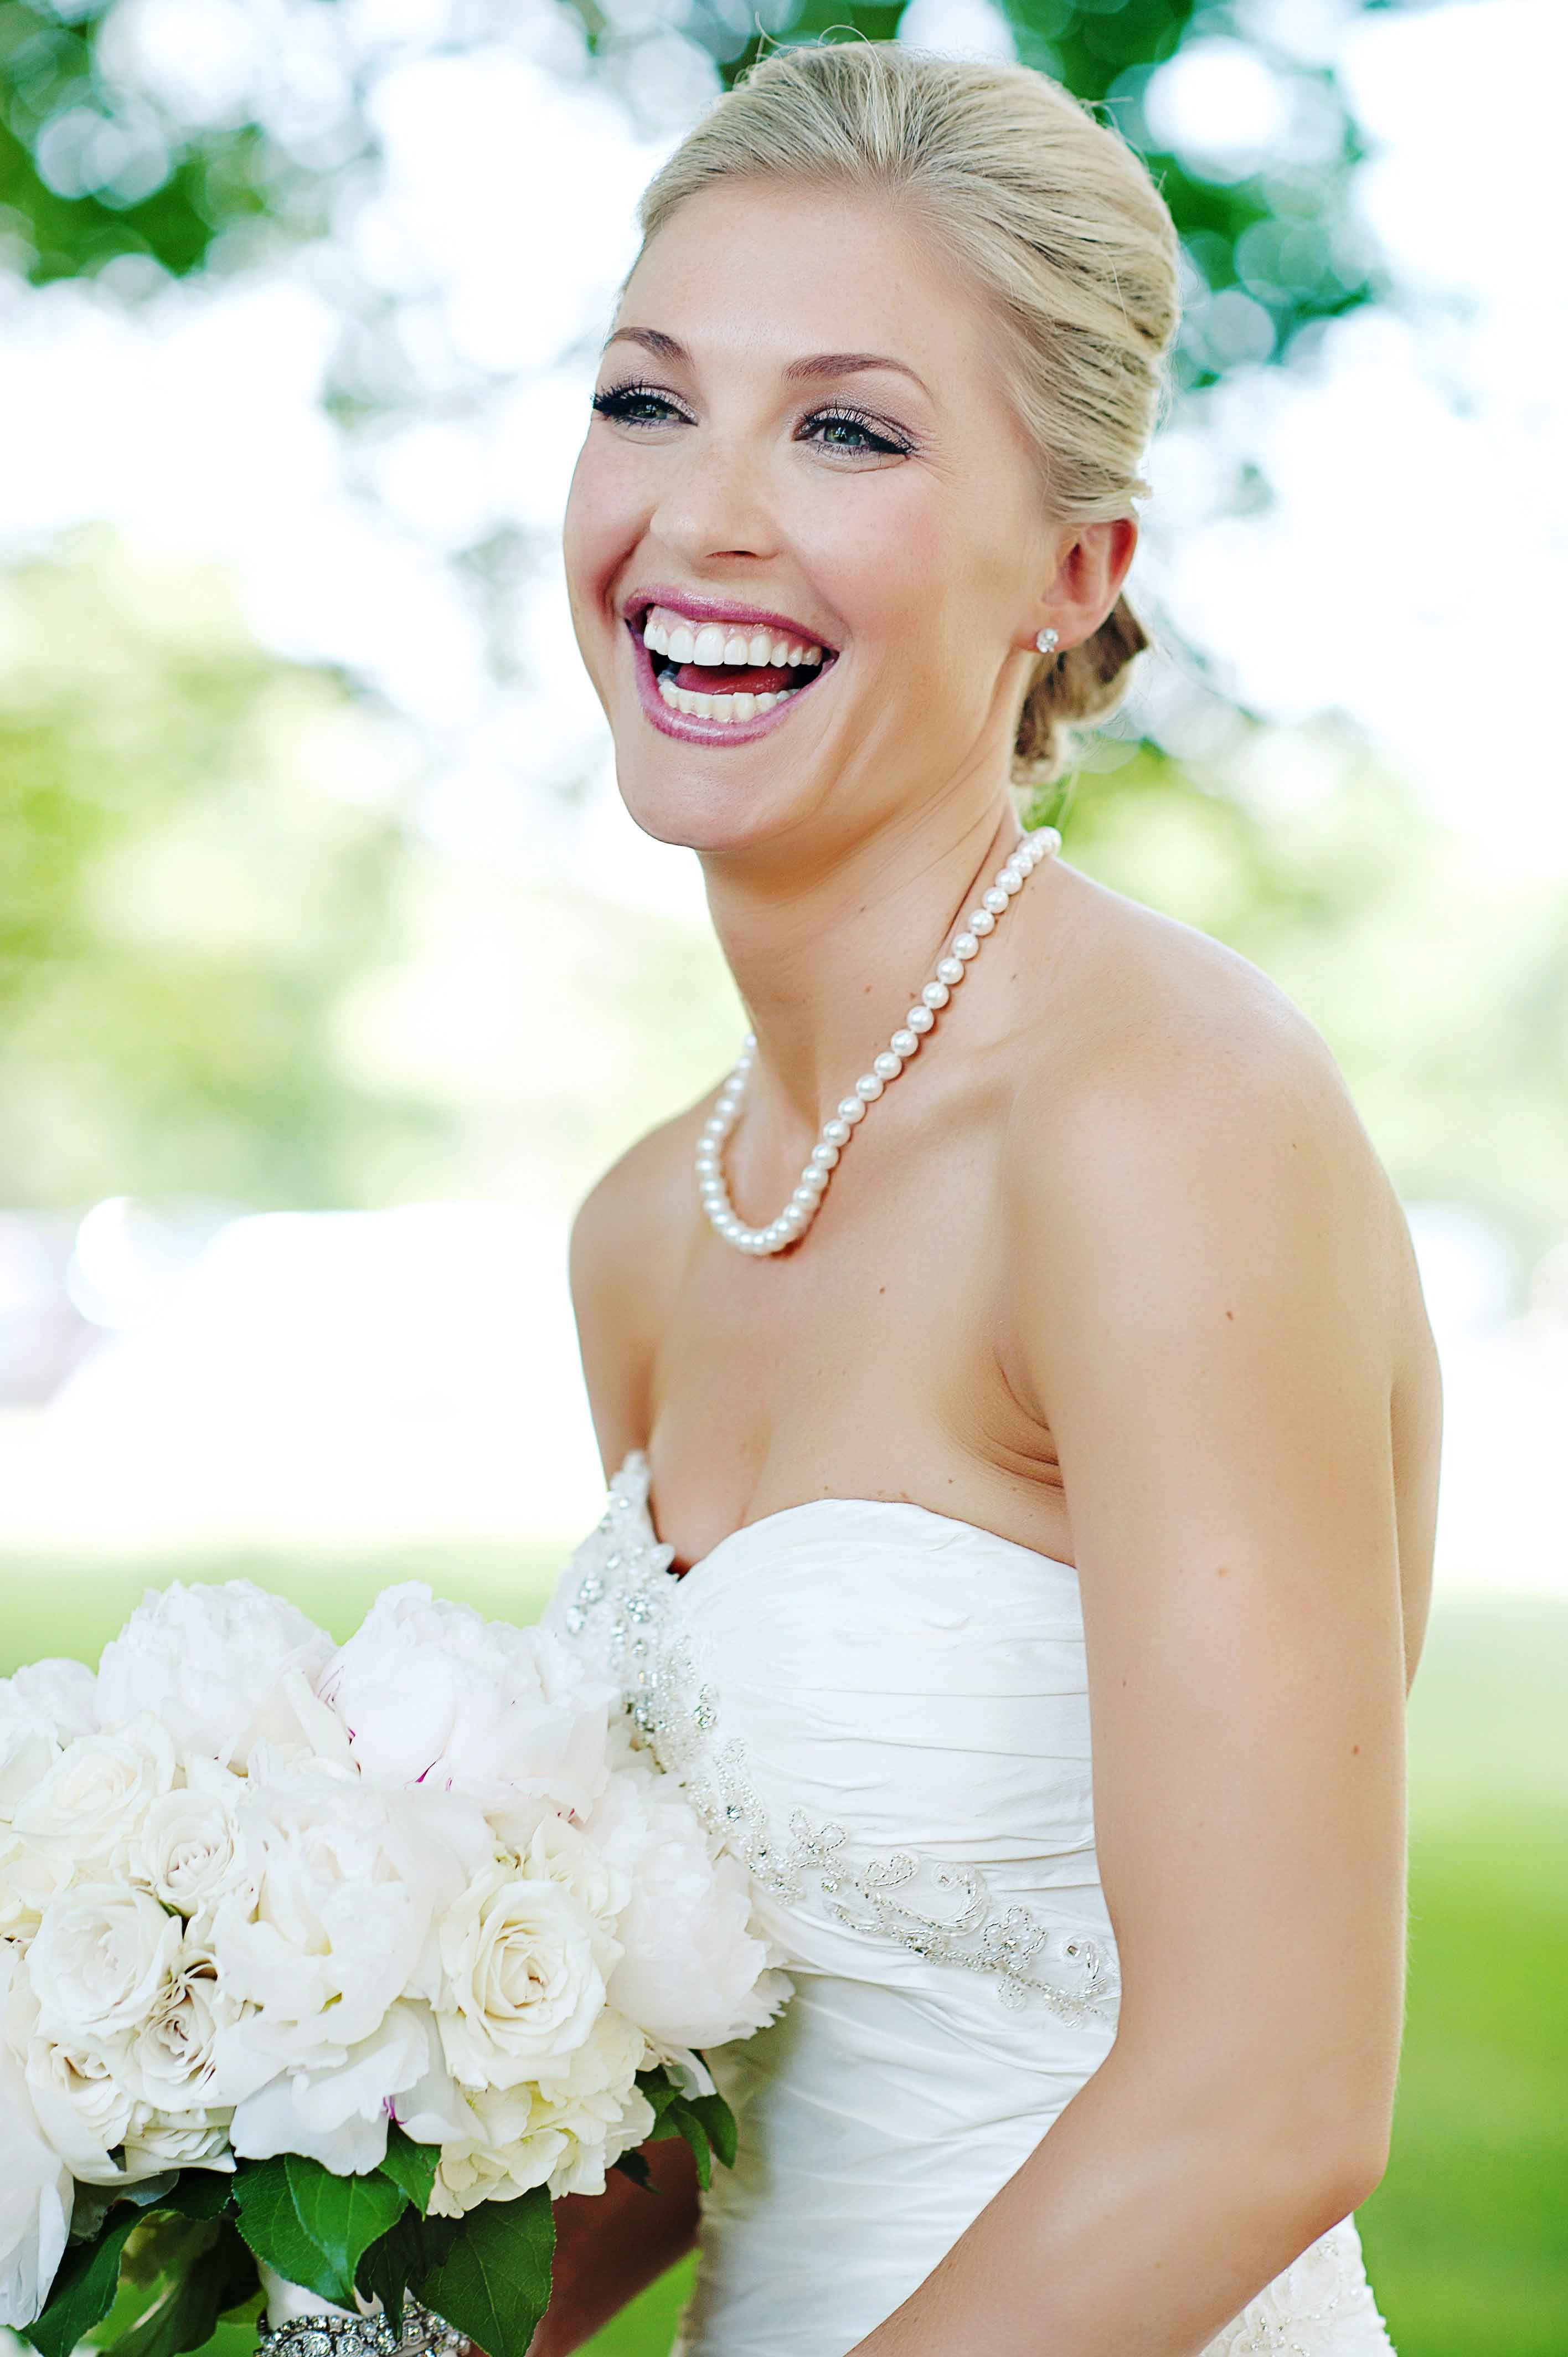 Bride Smiling with Pearl Necklace